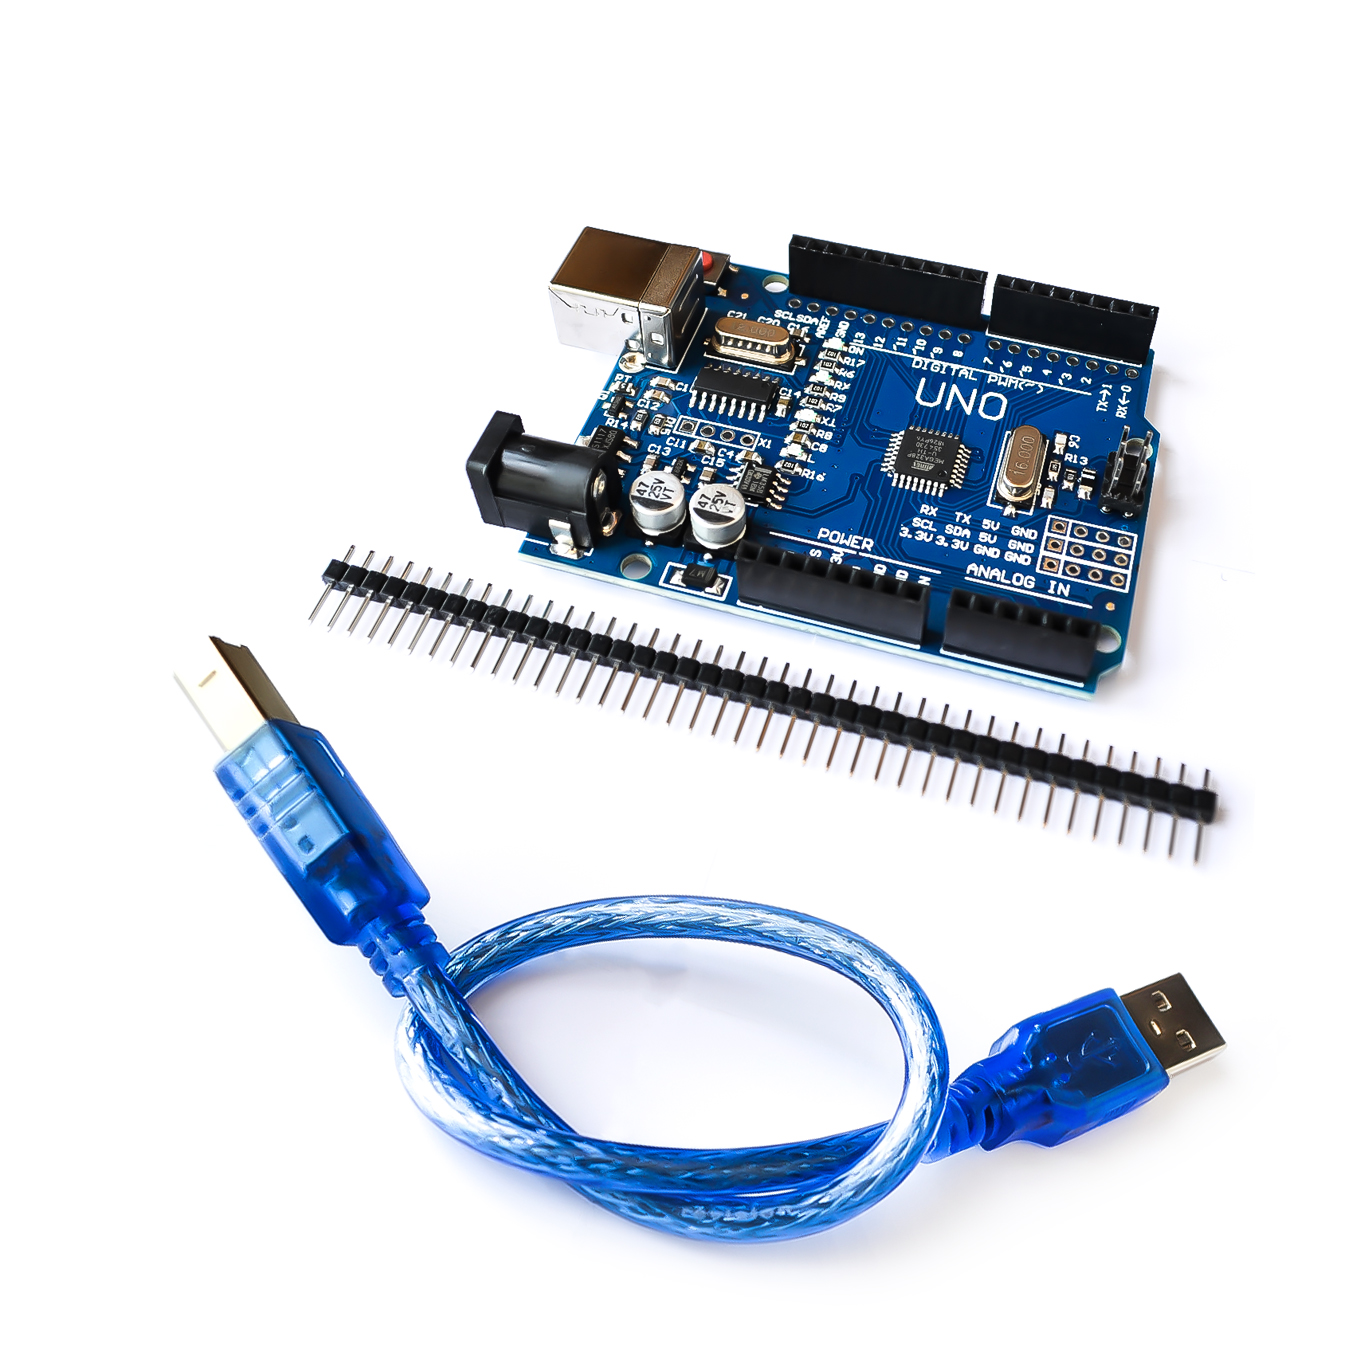 High Quality One Set Uno R3 Ch340g+mega328p Chip 16mhz For Arduino Uno R3 Development Board + Usb Cable